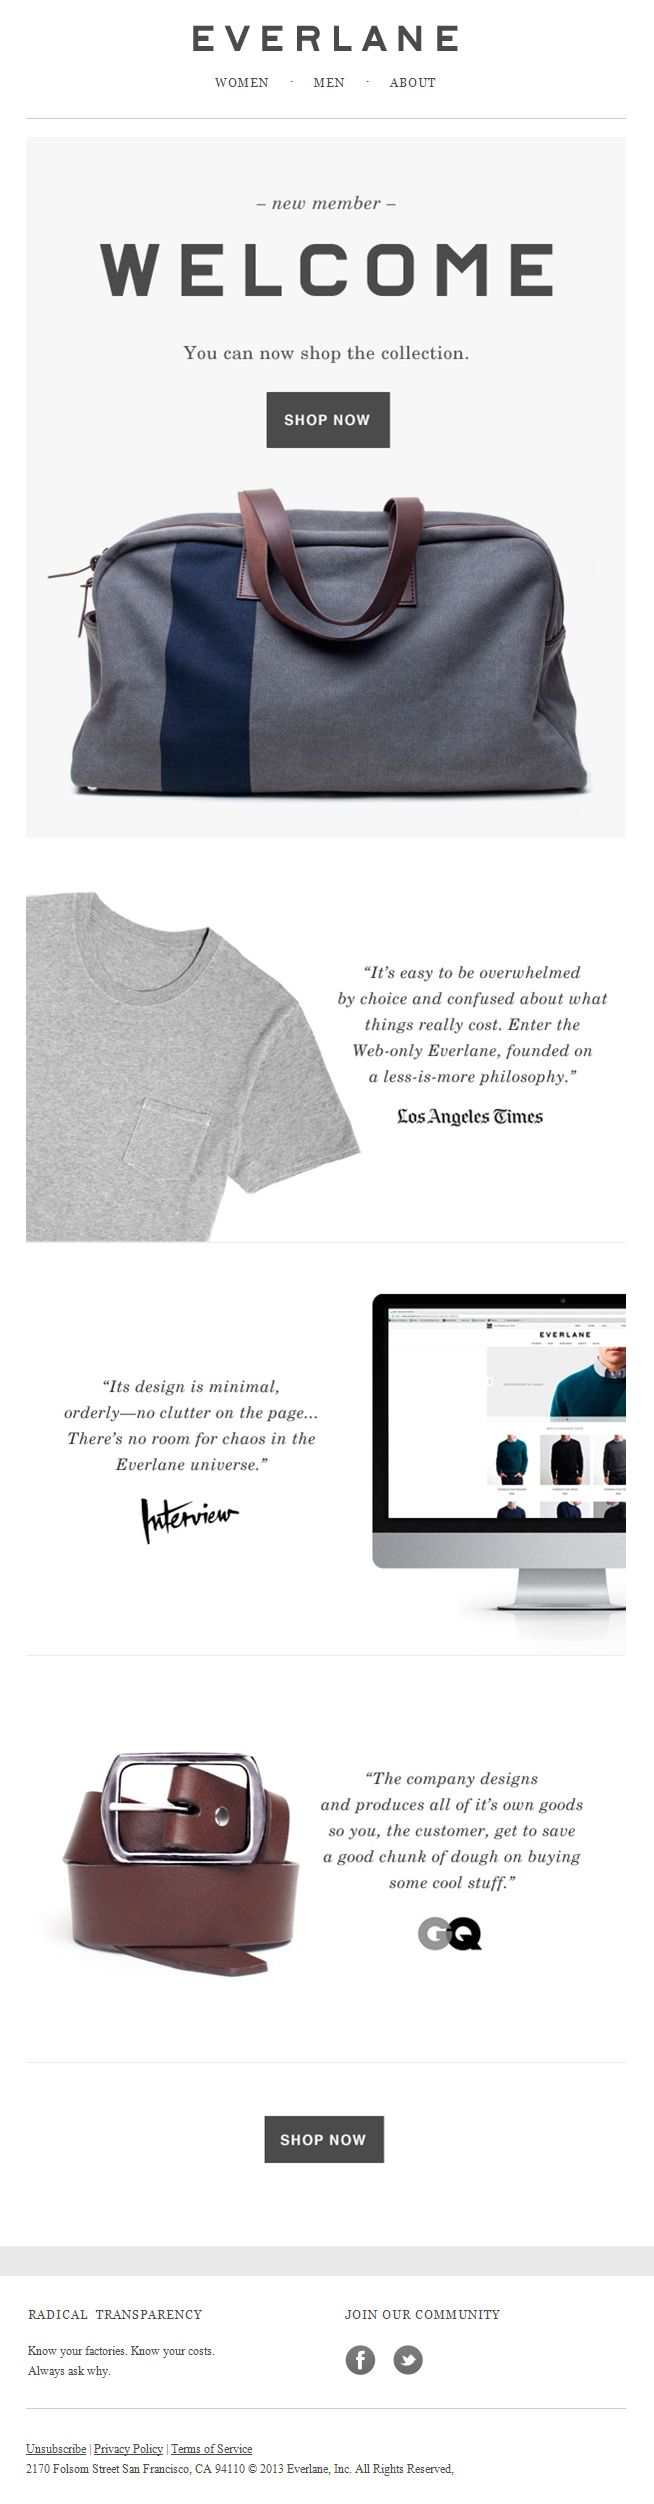 #Everlane #WelcomeEmail #EmailDesign - interesting concept for welcome email